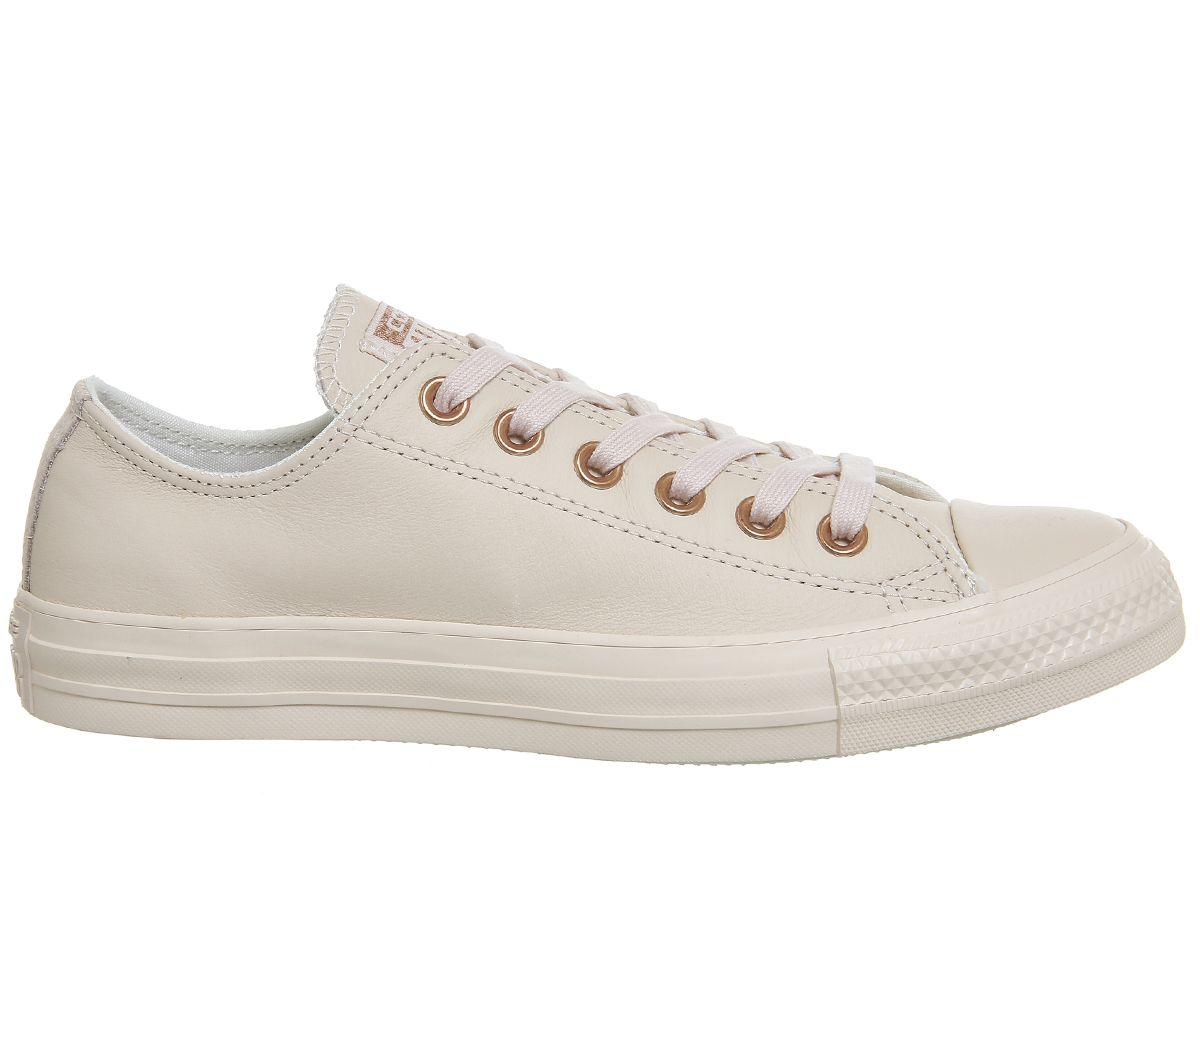 2578c4e3a37ef8 Converse All Star Low Leather Pastel Rose Tan Rose Gold - Hers trainers